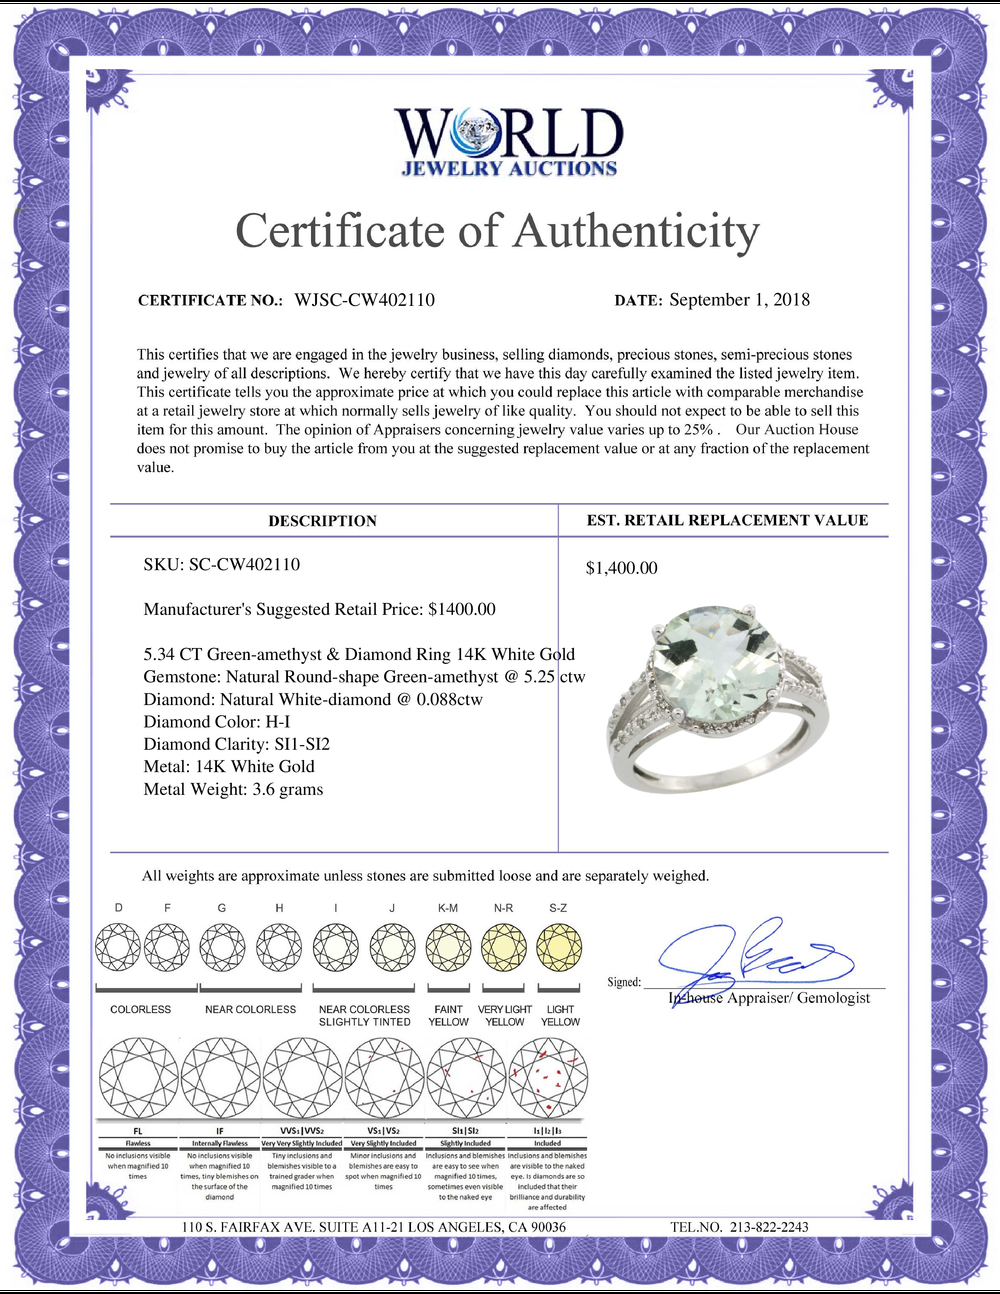 Lot 4161: Natural 5.34 ctw Green-amethyst & Diamond Engagement Ring 14K White Gold - REF-45H5W